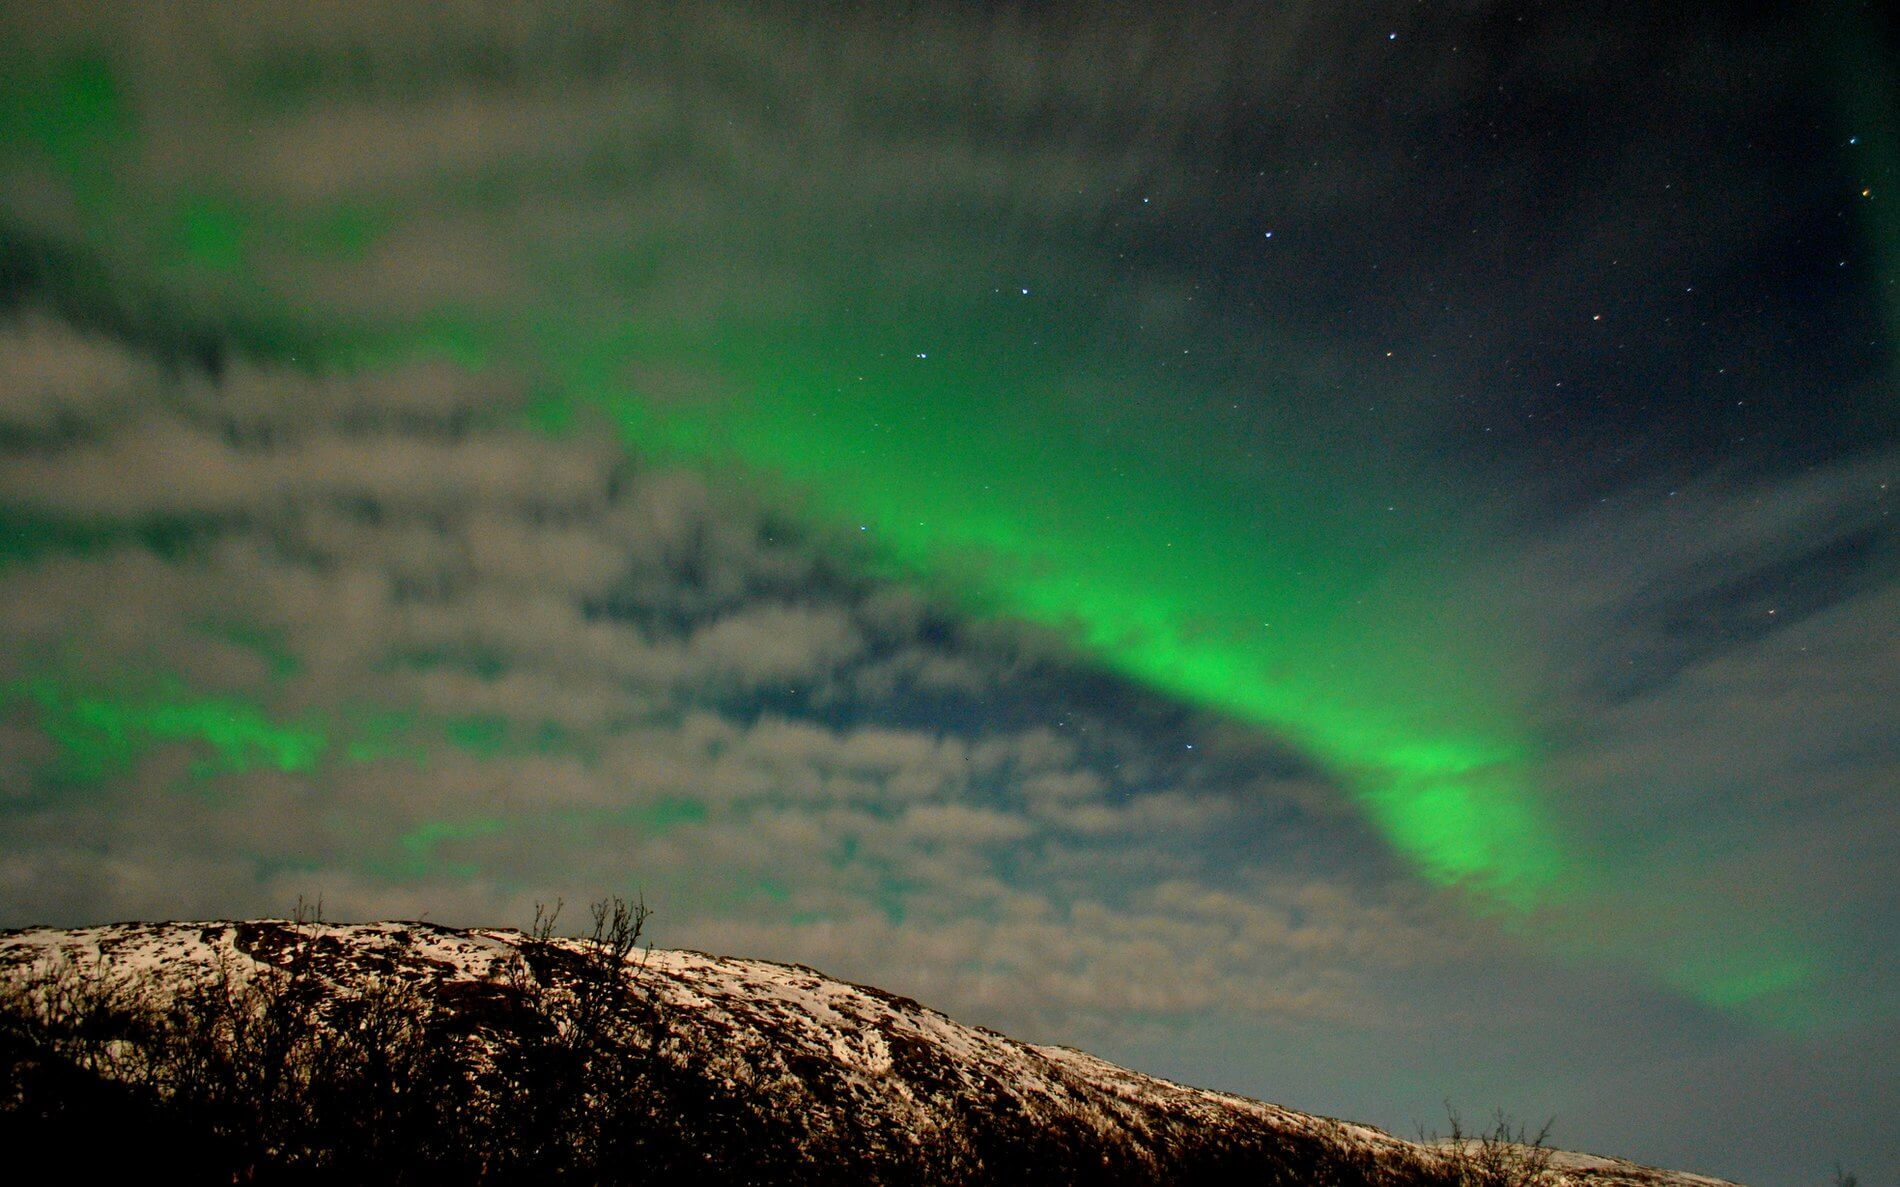 Chasing the Northern Lights in Norway